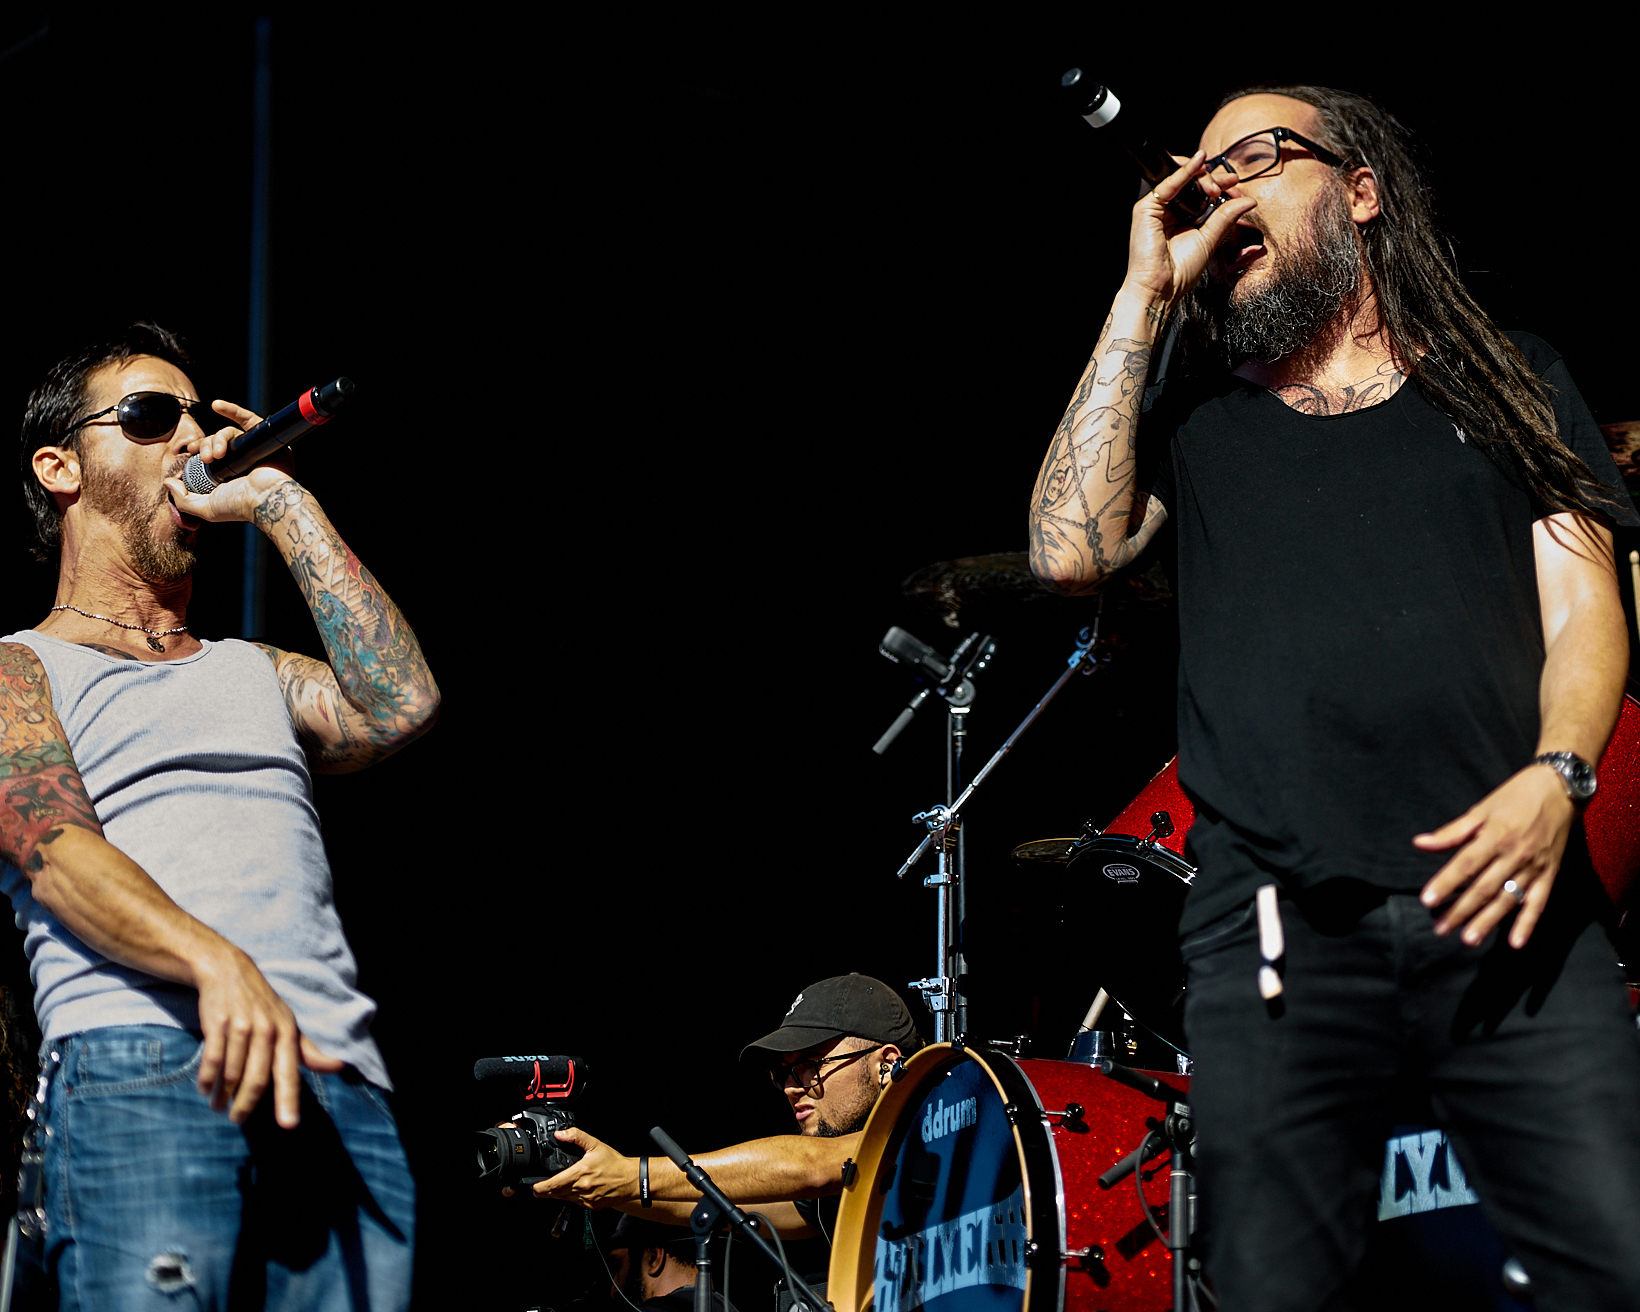 Jonathan Davis (Korn) duets with Sully Erna (Godsmack) at Aftershock 2018